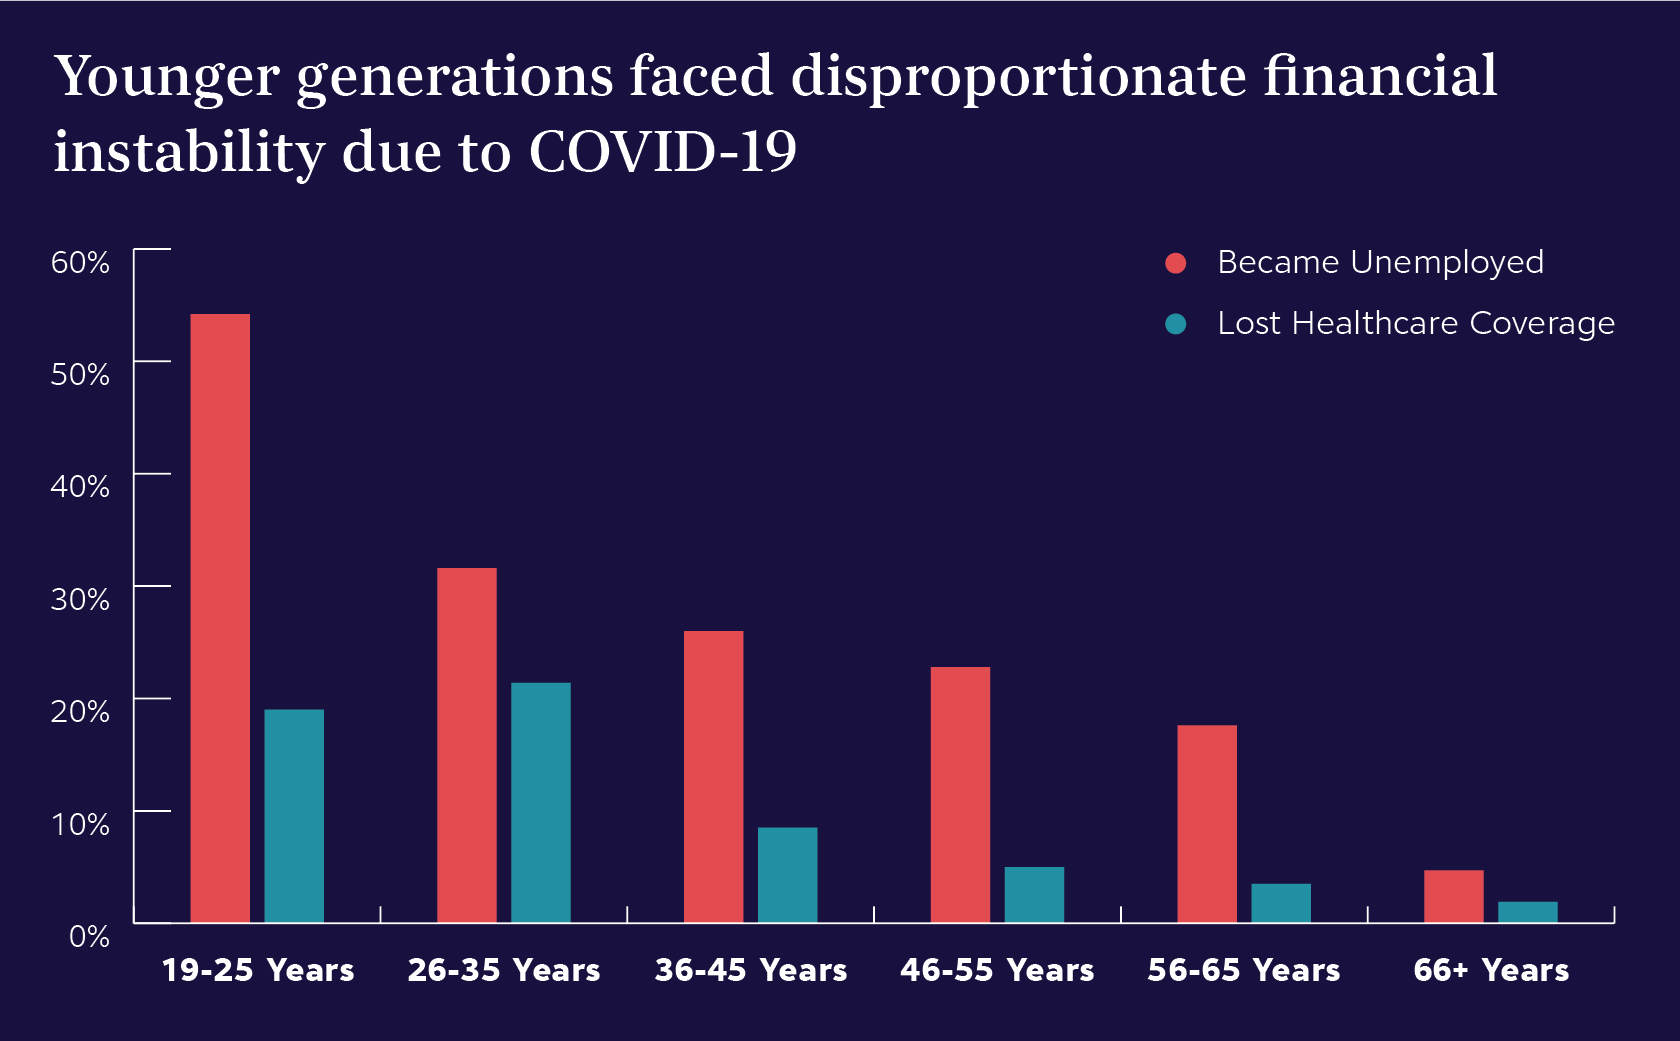 Graph of generational financial instability due to COVID-19